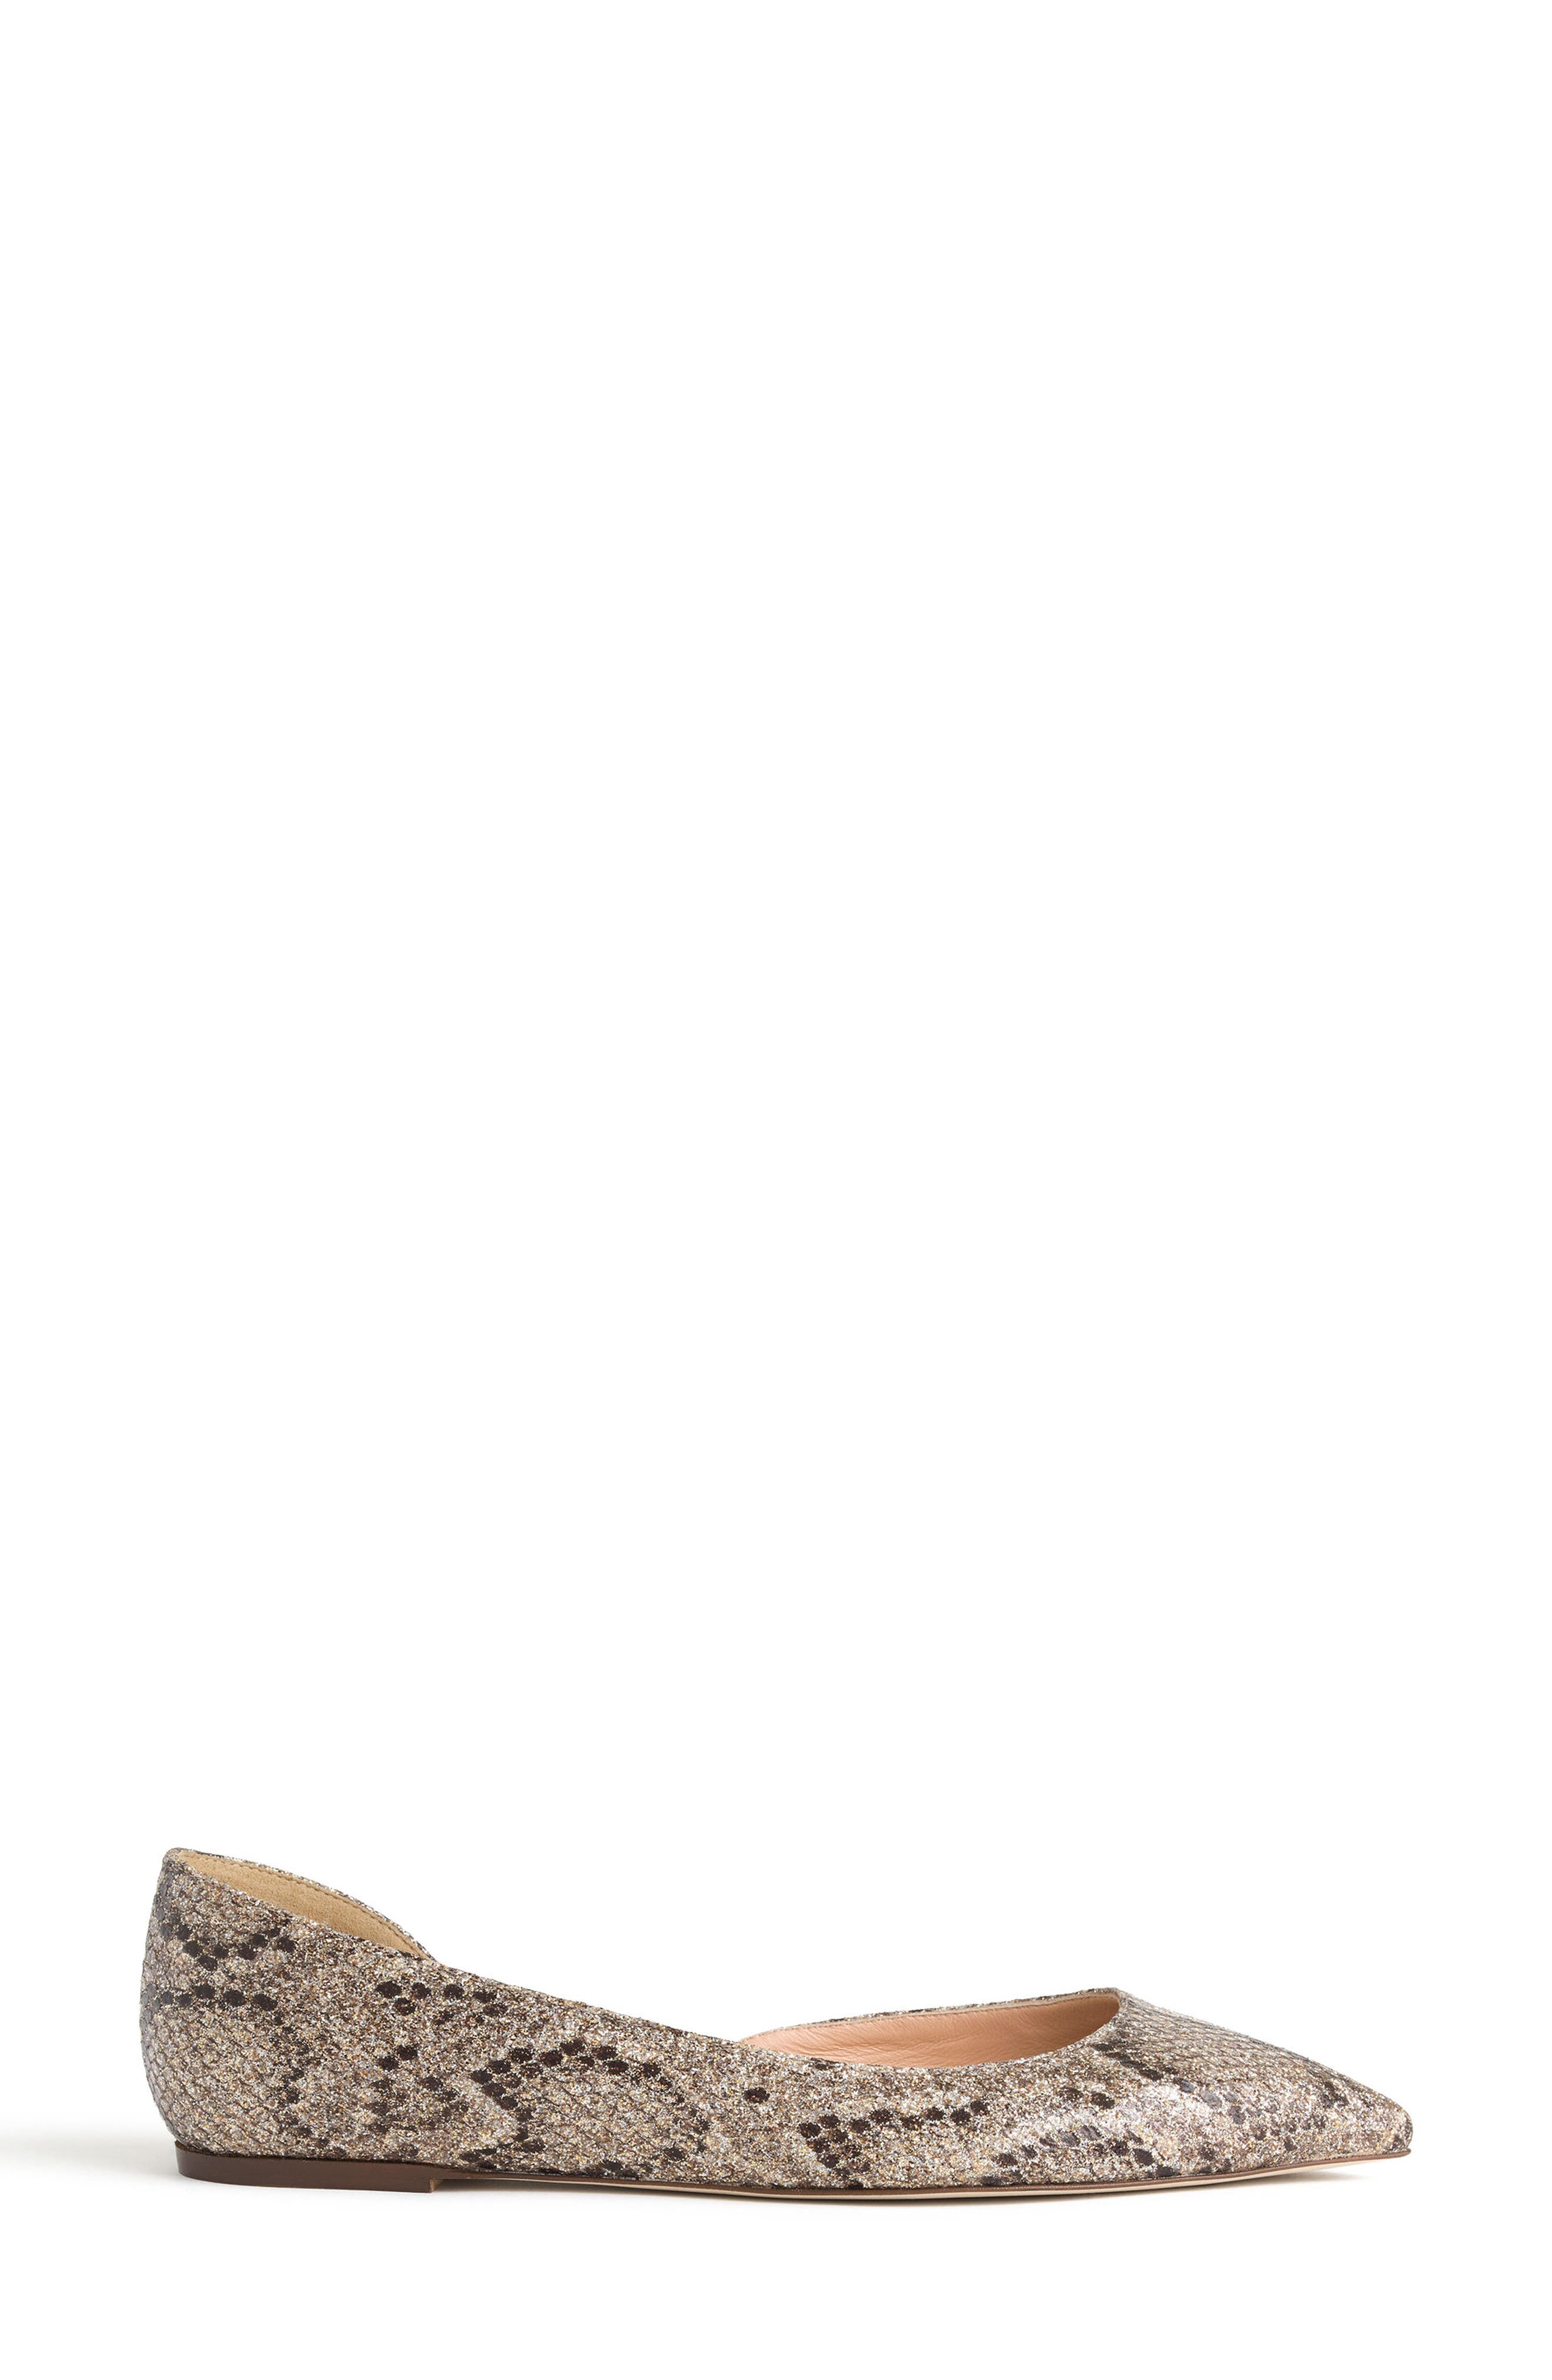 J.Crew Sadie Glitter Flat,                             Alternate thumbnail 2, color,                             Gold Brown Glitter Fabric